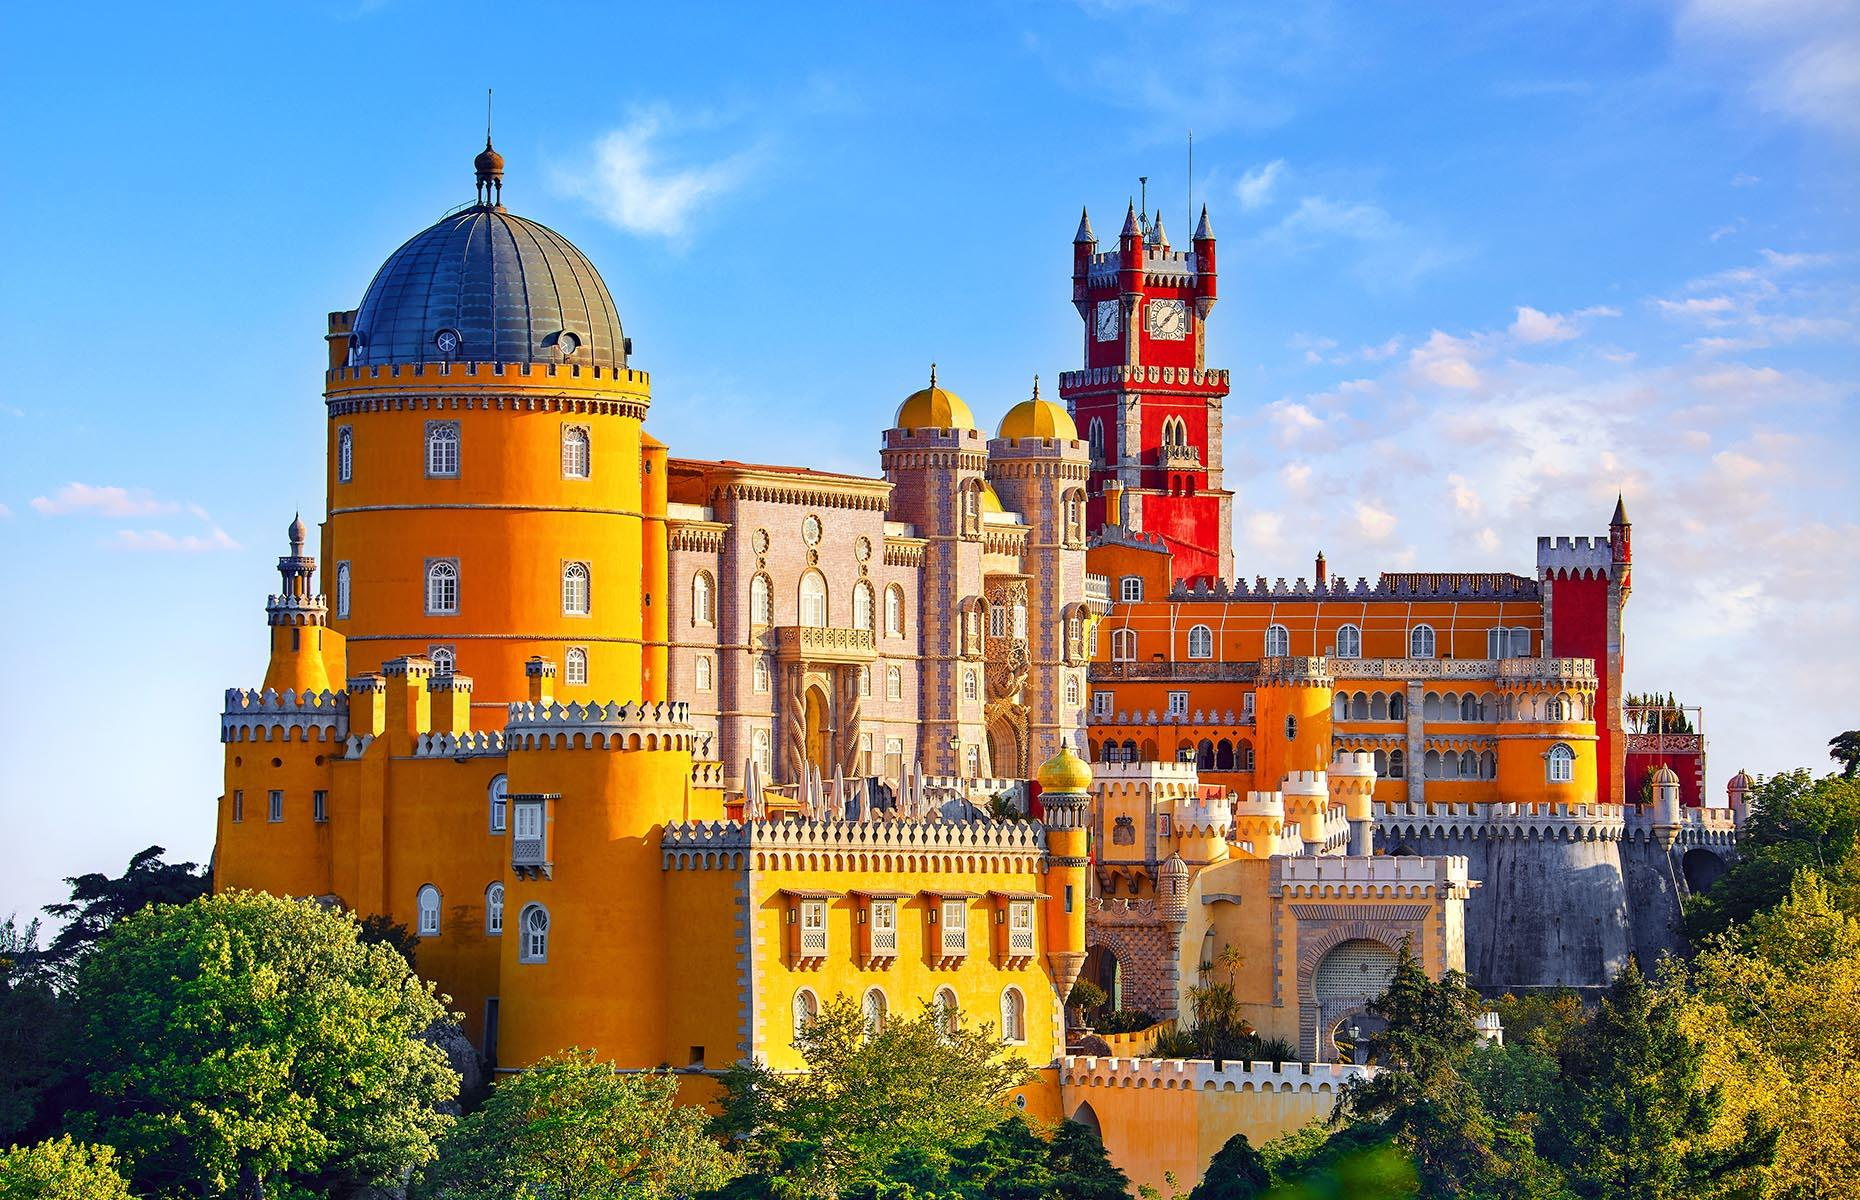 Slide 14 of 41: It might be called a palace, but it is in fact a castle, and few are so heart-flutteringly pretty as Pena Palace, whose butter-yellow turrets and brick-red towers rise above the treetops in hilly Sintra, just outside Lisbon. The multicolored beauty, an example of 19th-century Romanticism, was commissioned by King Ferdinand II and completed in 1854, and has been home to Portuguese royals through the years. Take a look at more of Europe's most beautiful castles.